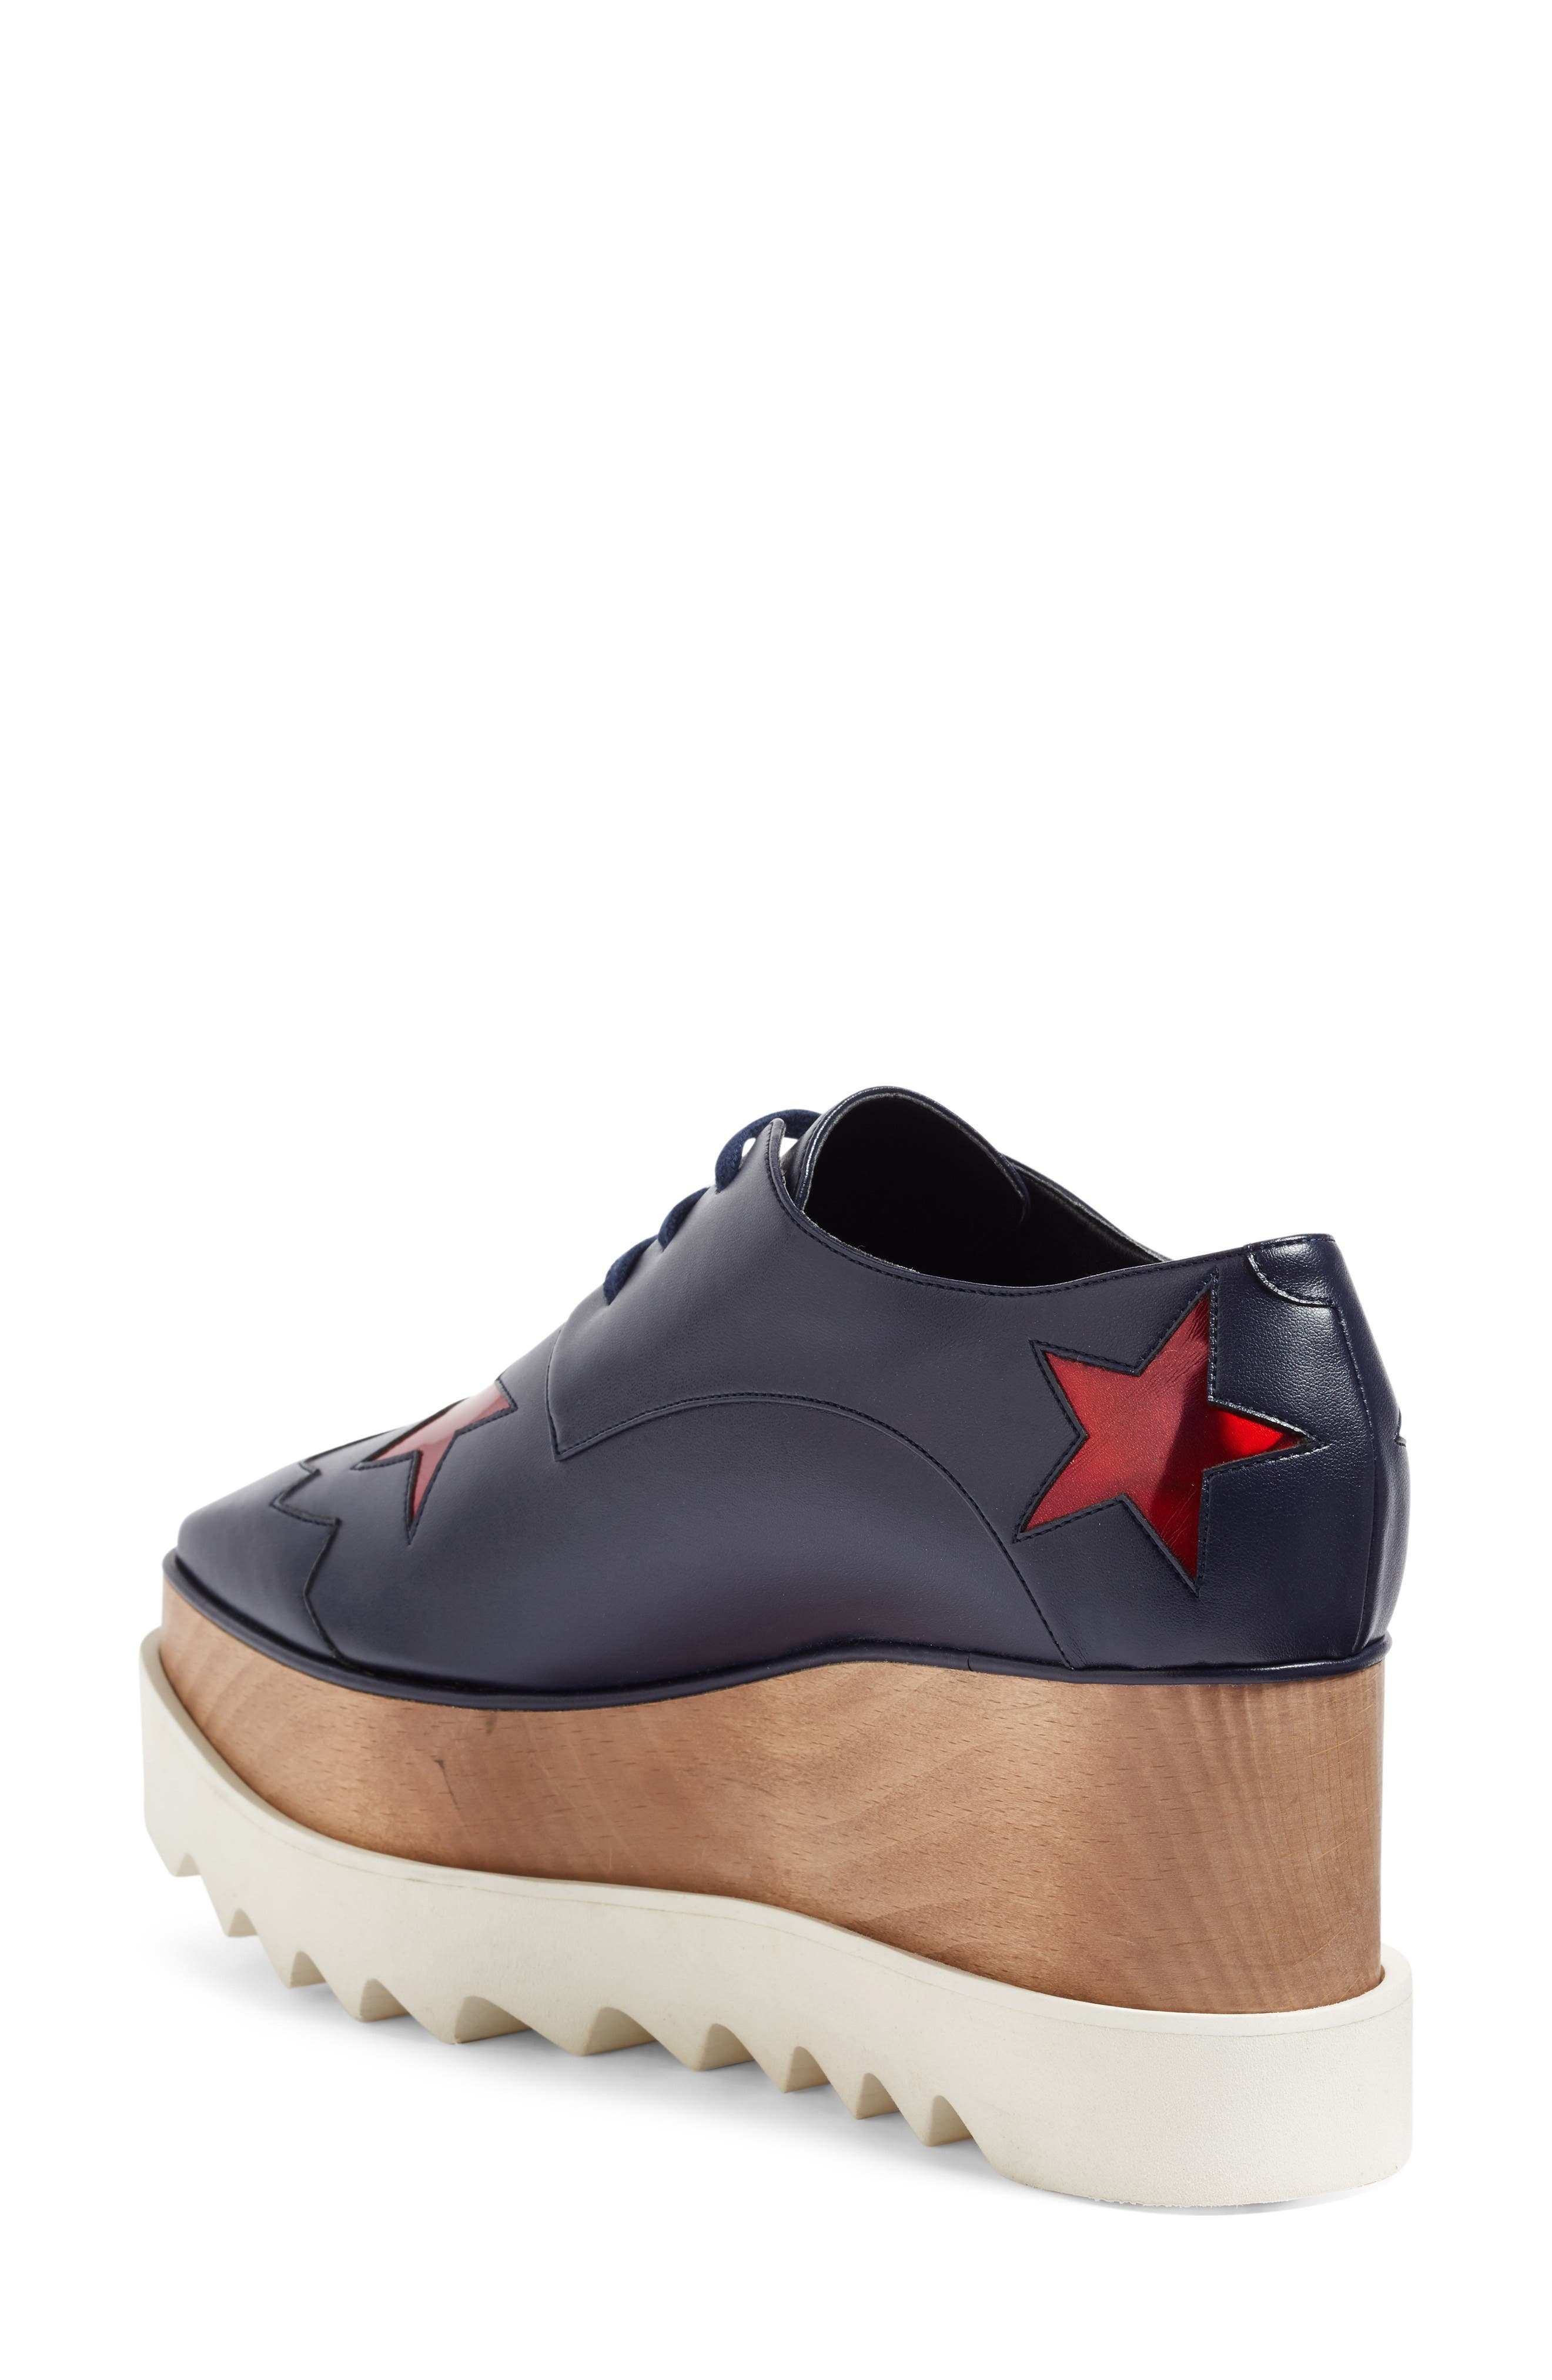 Alternate Image 2  - Stella McCartney Platform Oxford (Women)